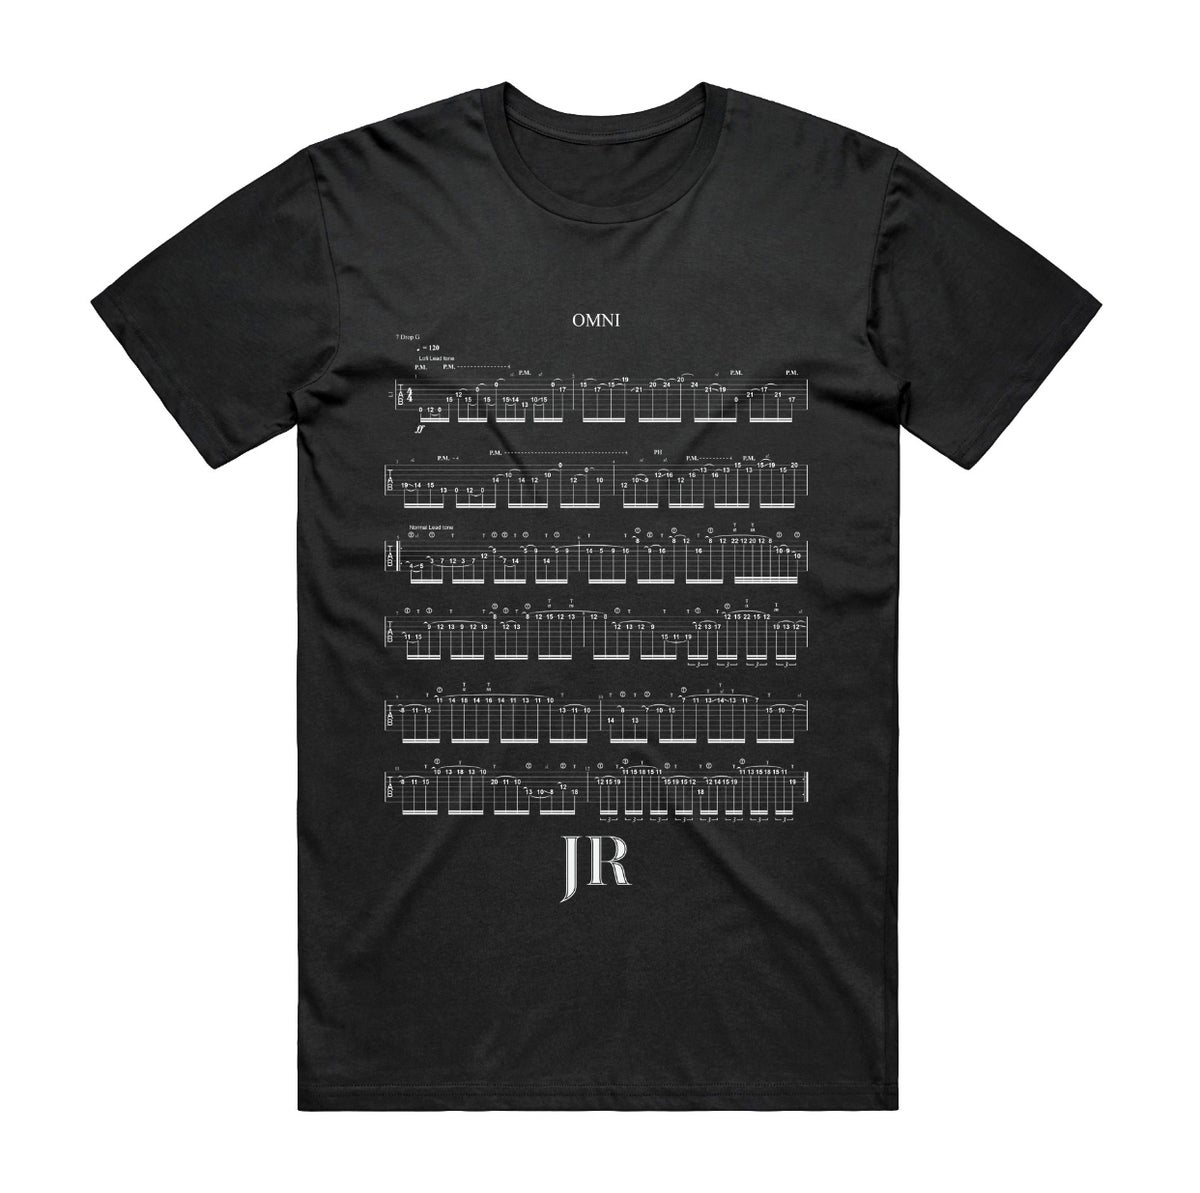 Image of OMNI Guitar Tab Shirt